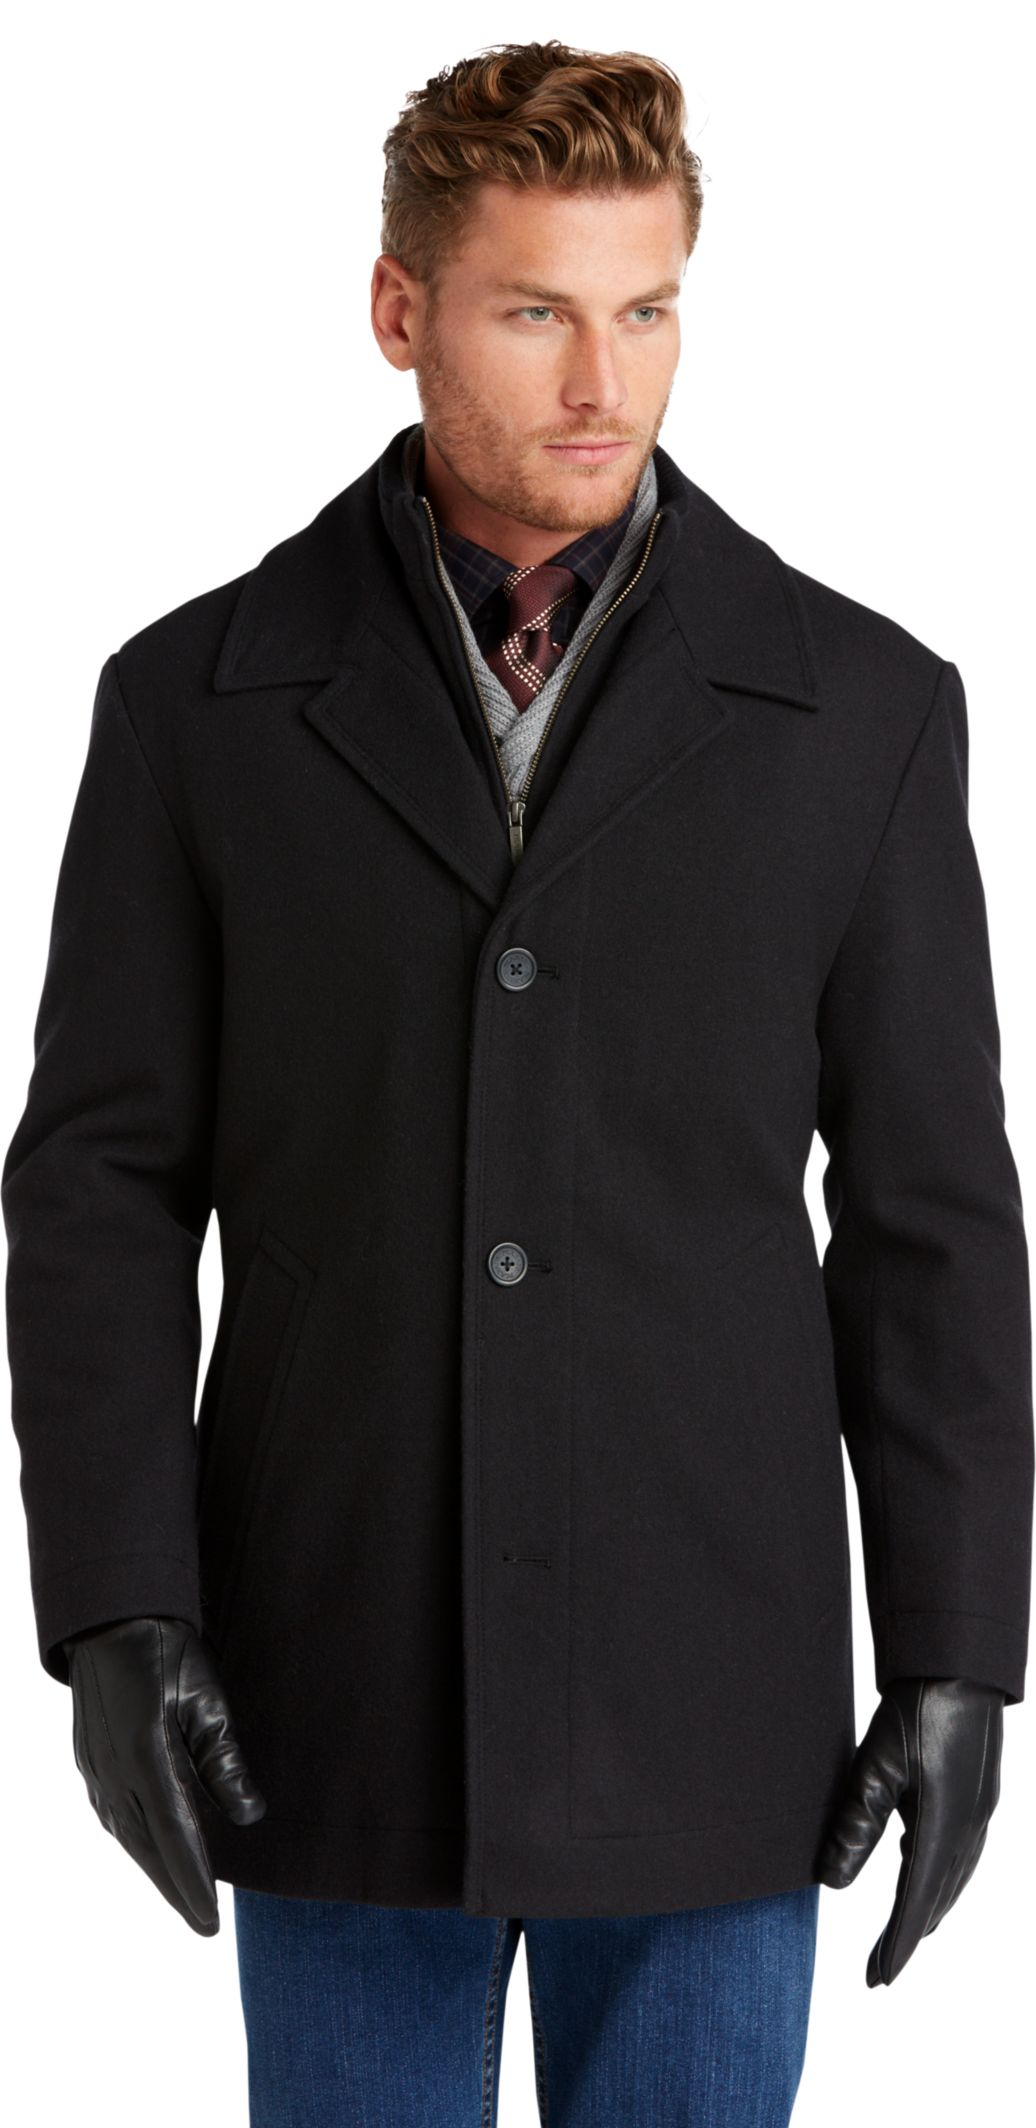 Shop Men's Clearance Outerwear, Jackets & Coats | JoS. A. Bank